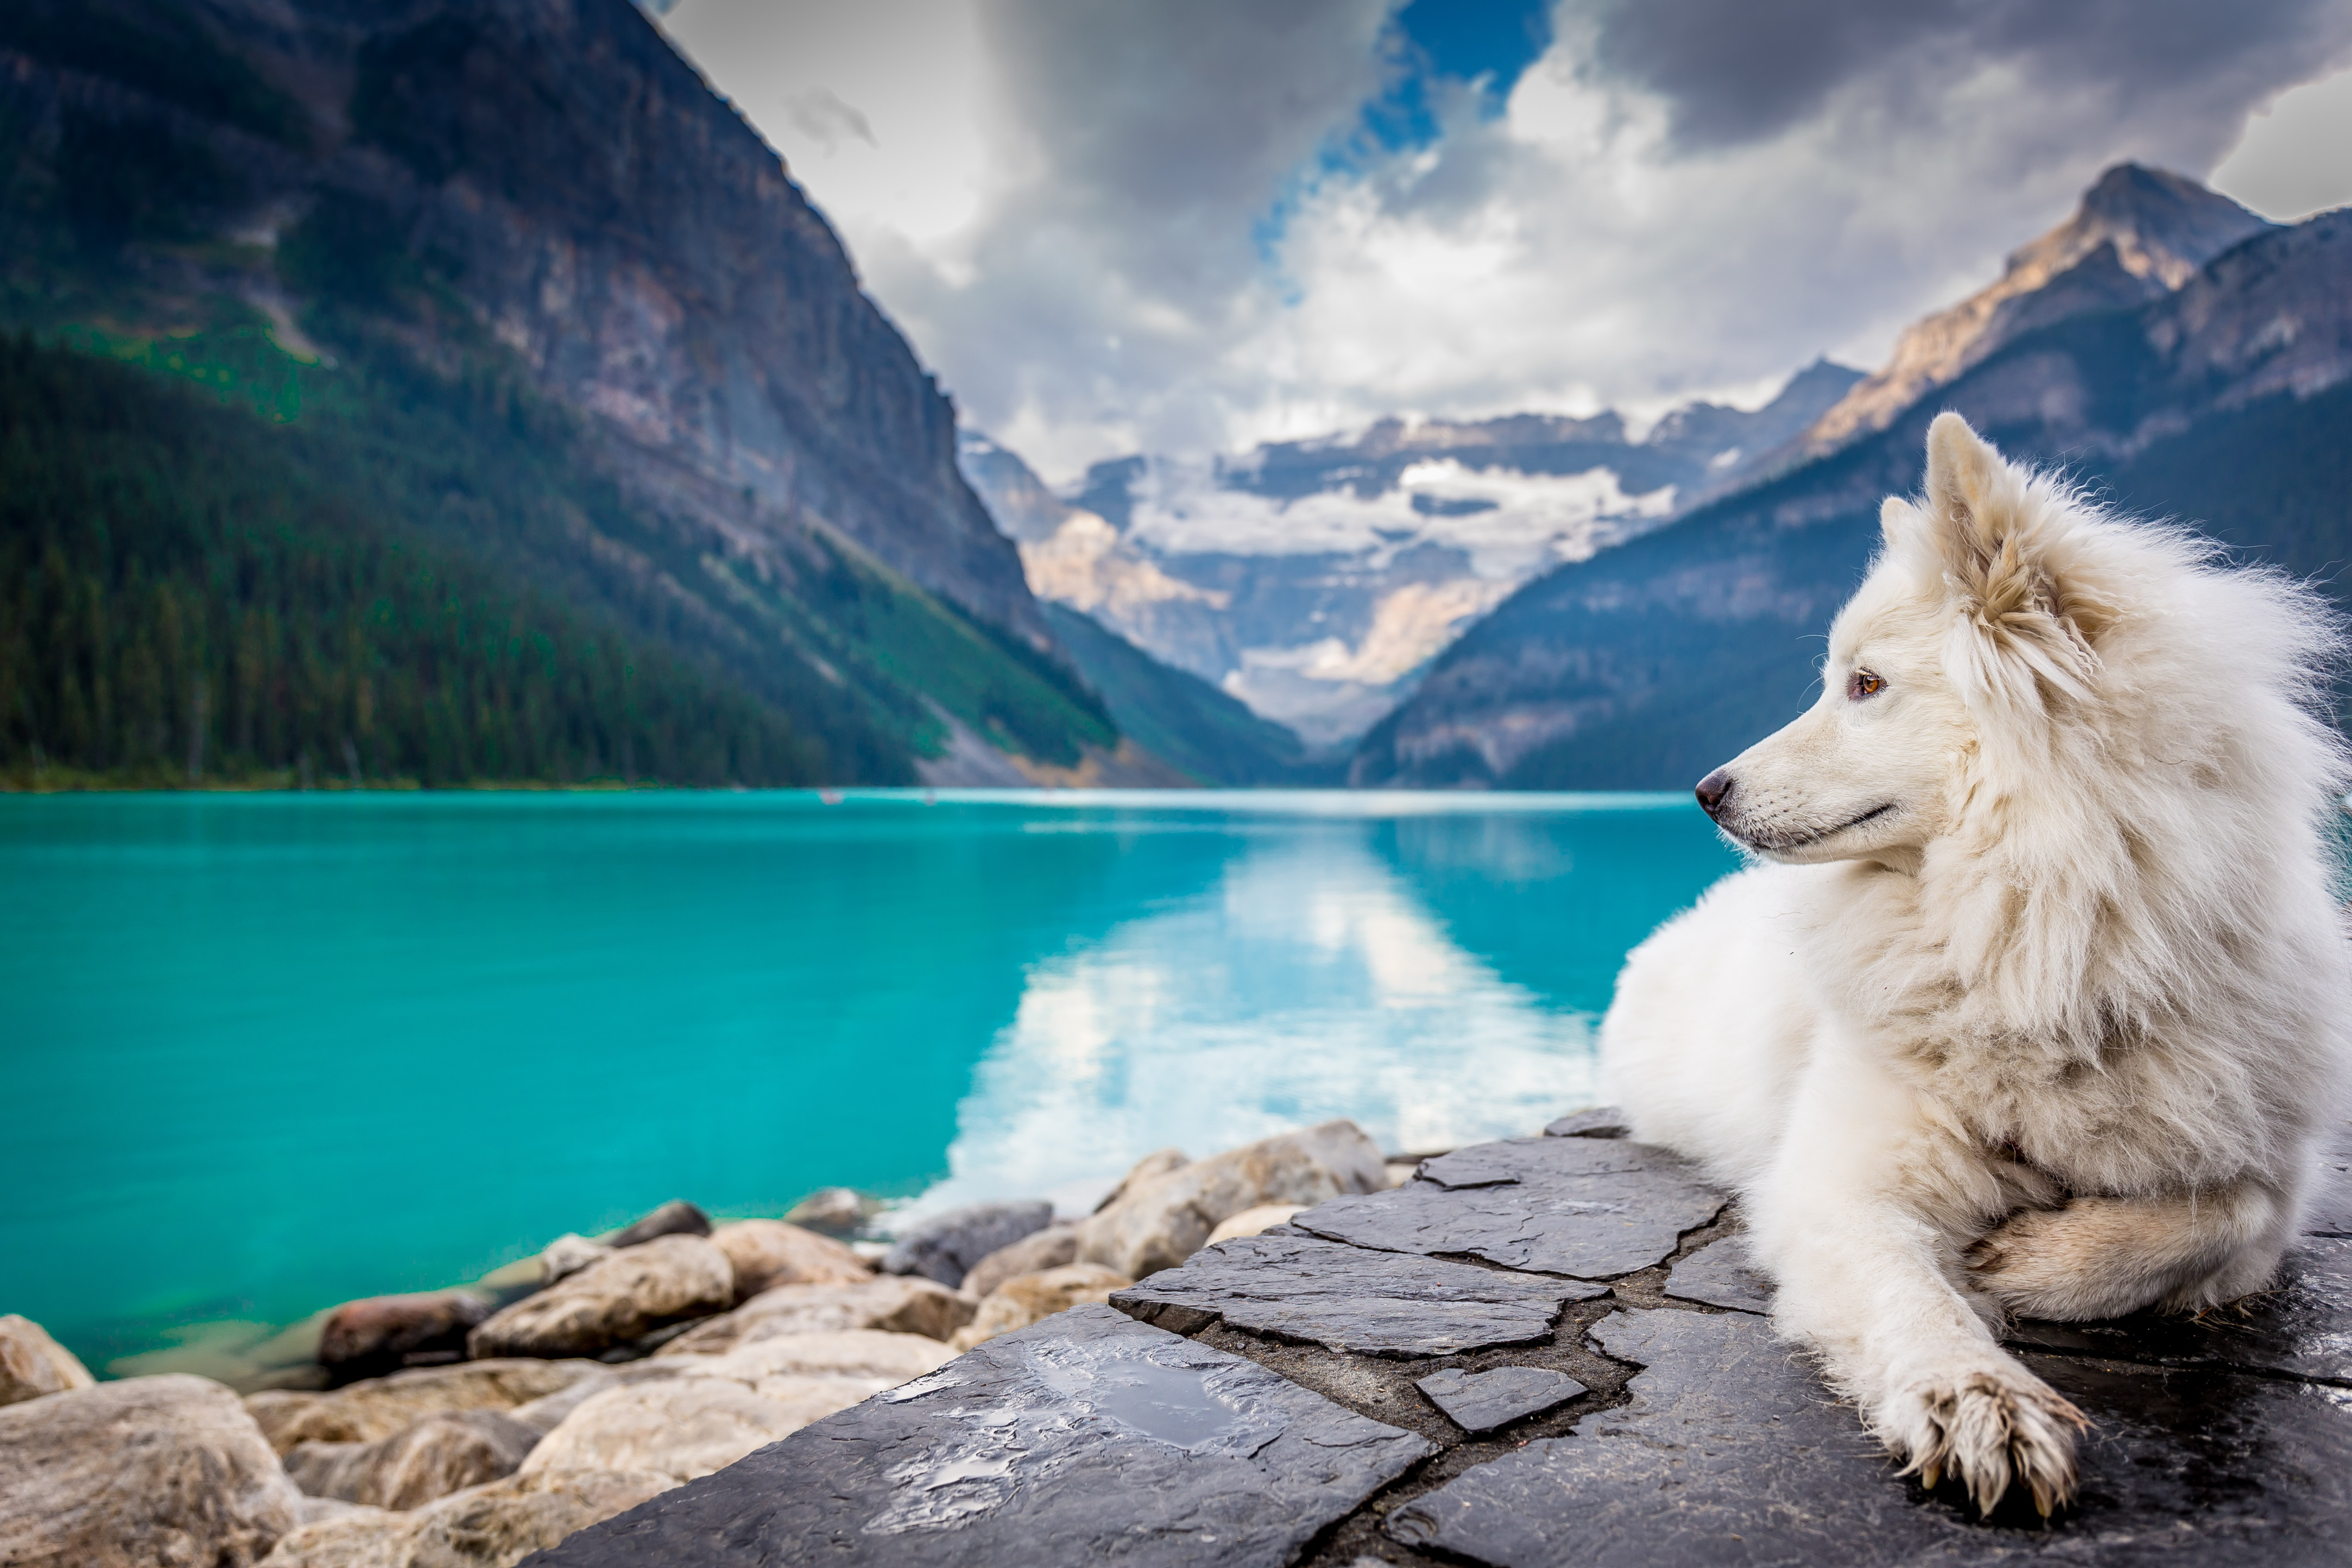 A white dog sitting on a rock formation near a large mountain pond.